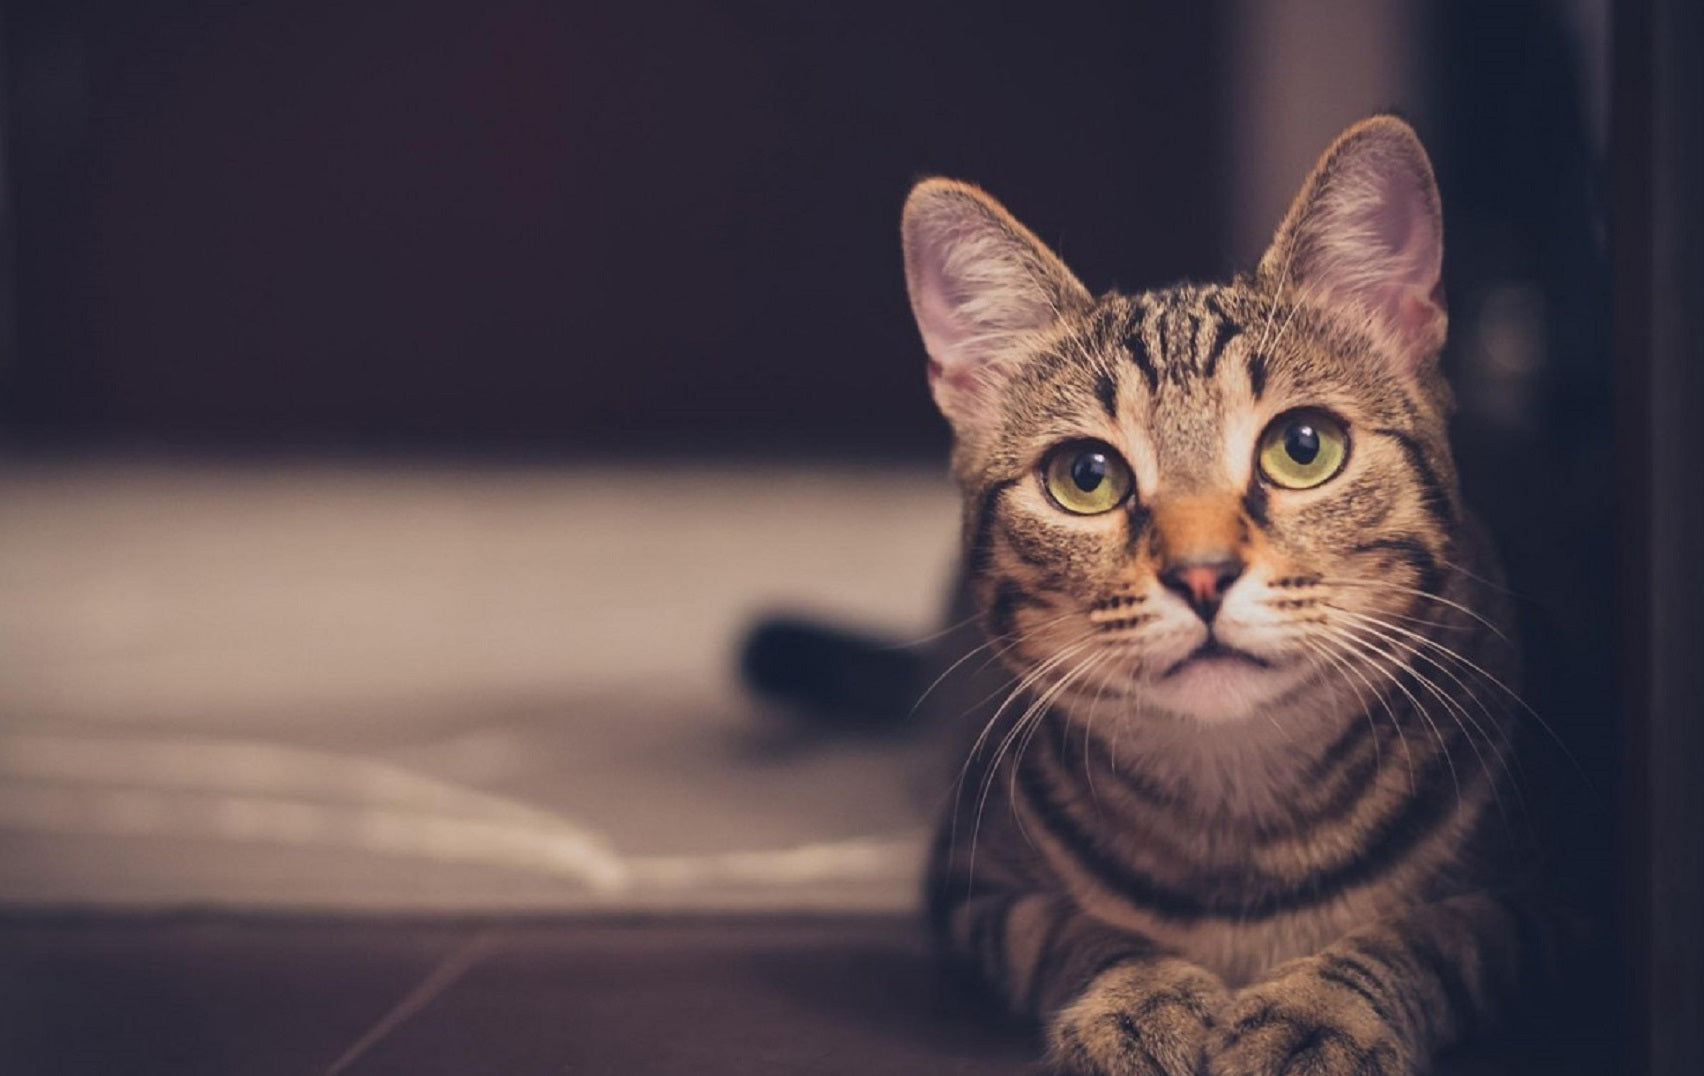 hageman deficiency in cats: Brown tabby cat with yellow eyes